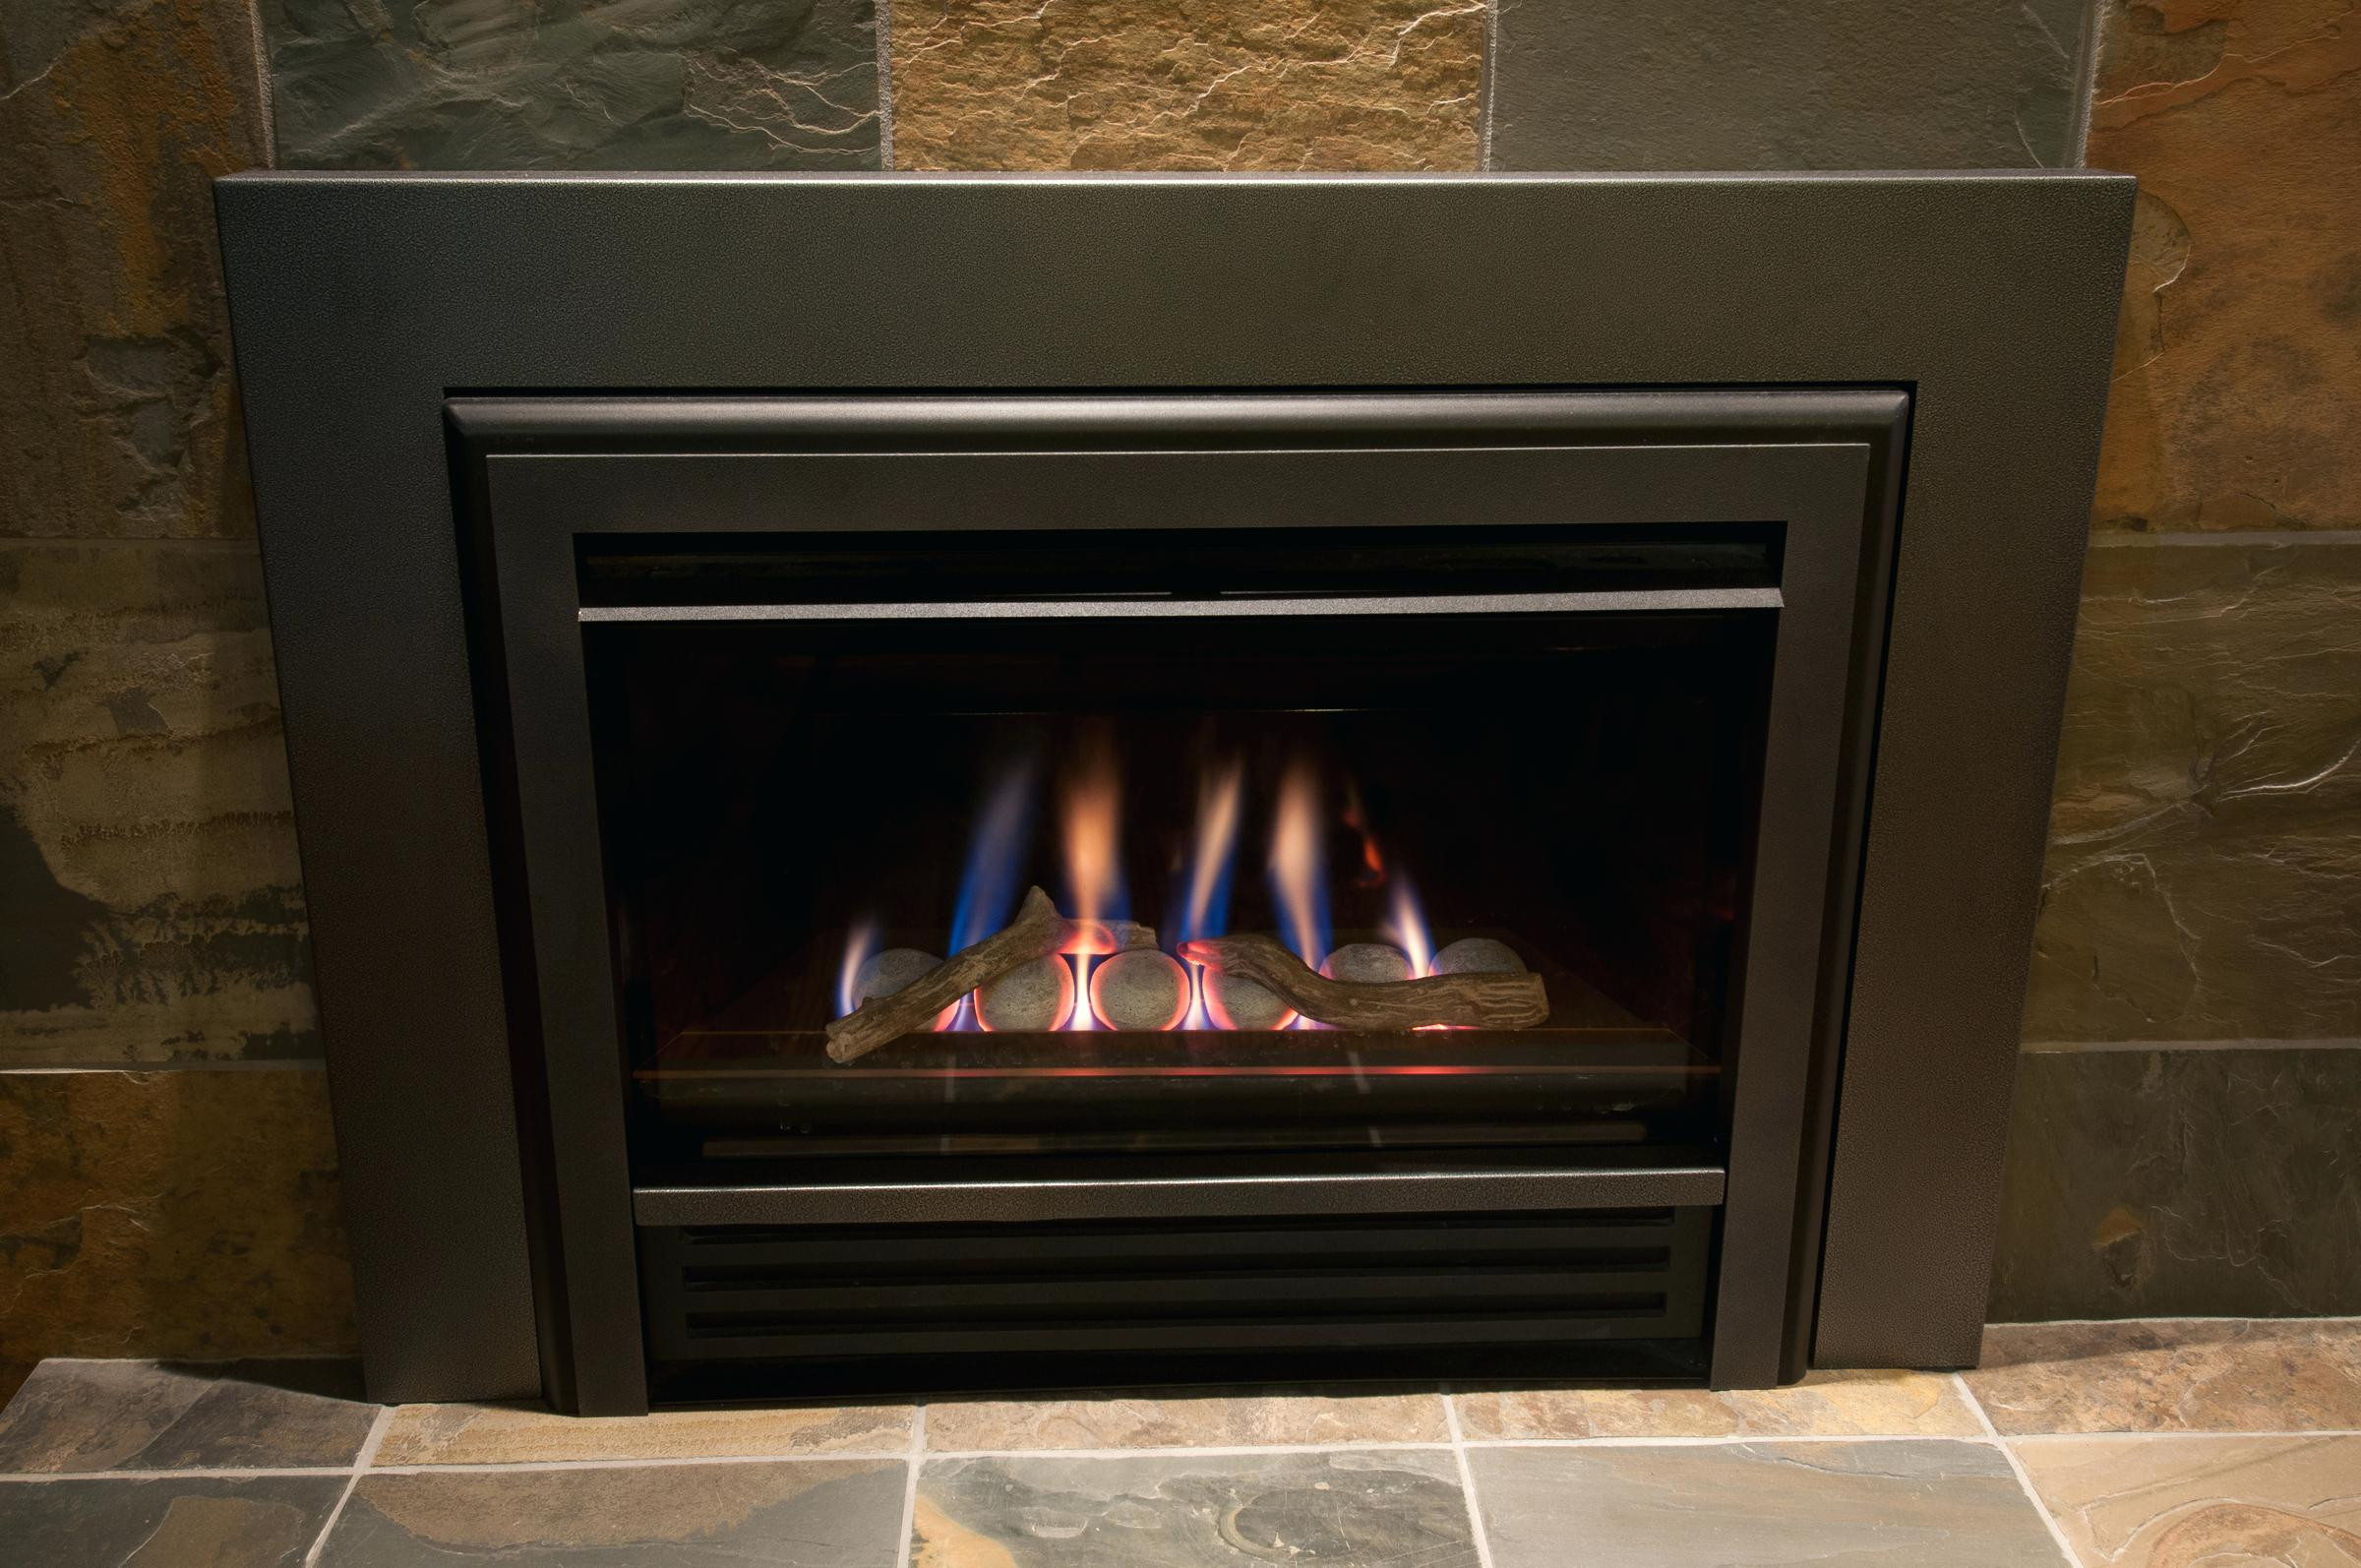 Best ideas about Propane Fireplace Inserts . Save or Pin Propane Fireplace Insert Now.